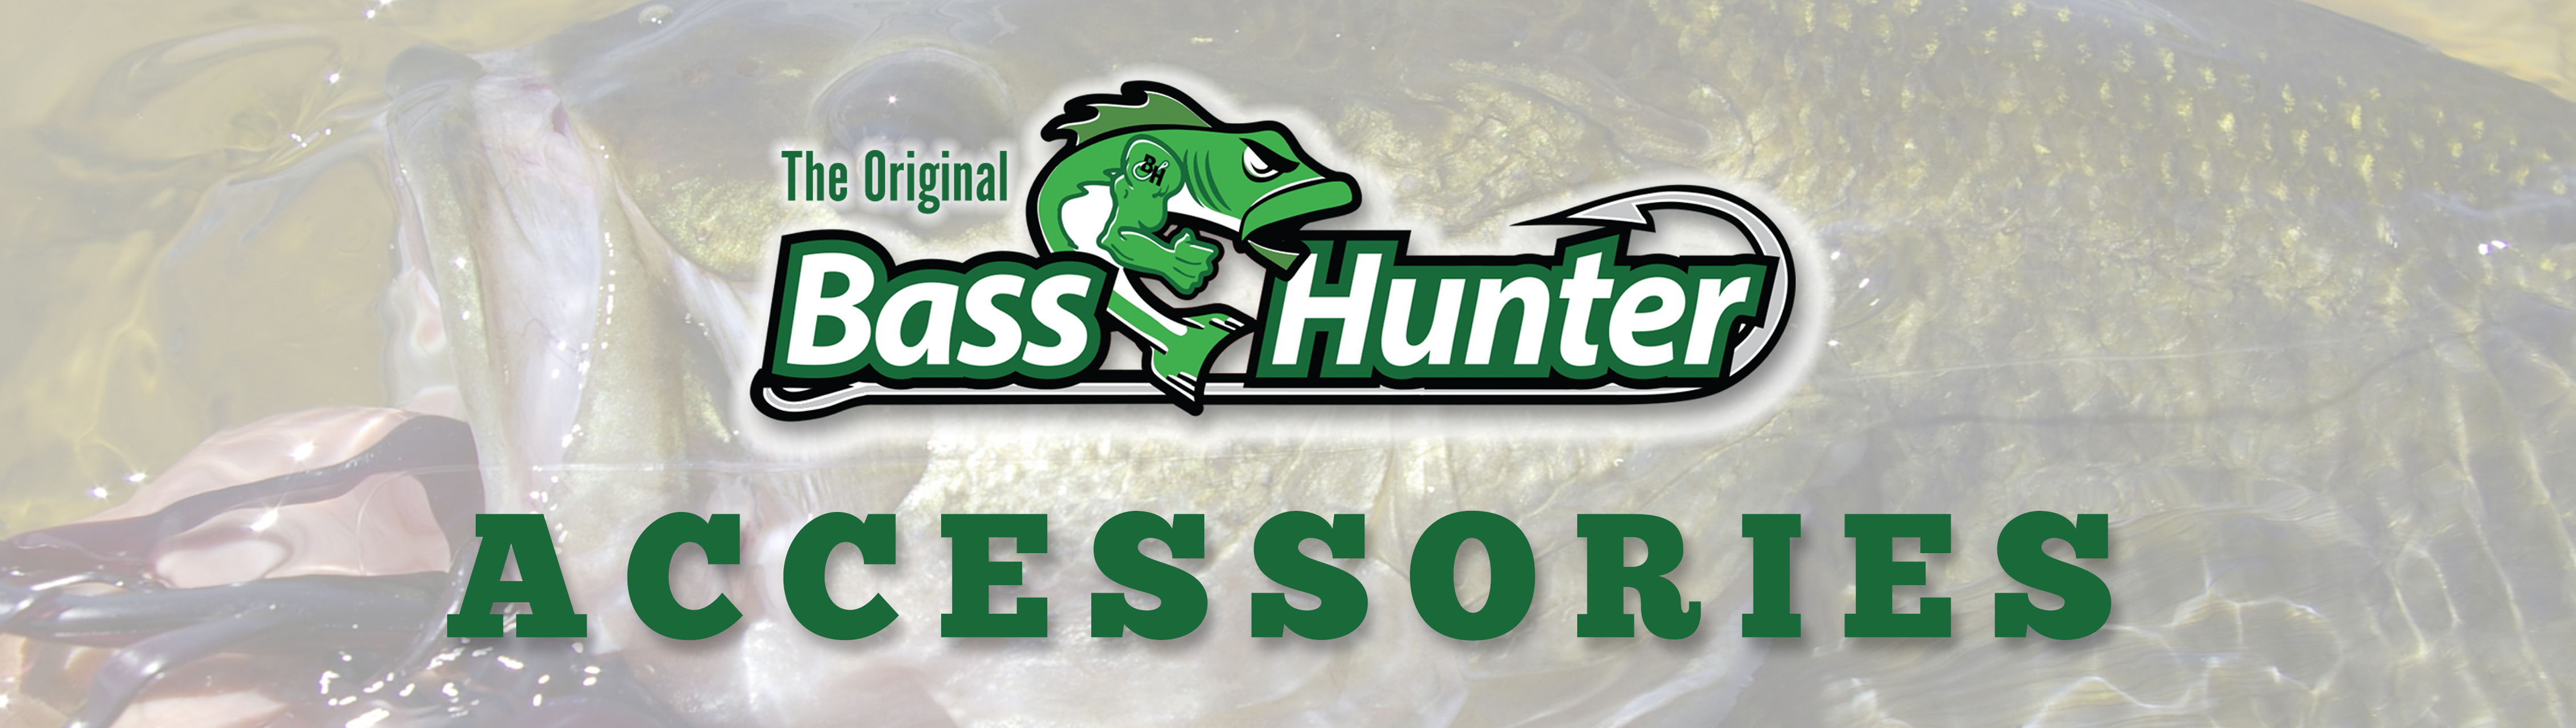 Bass Hunter Accessories